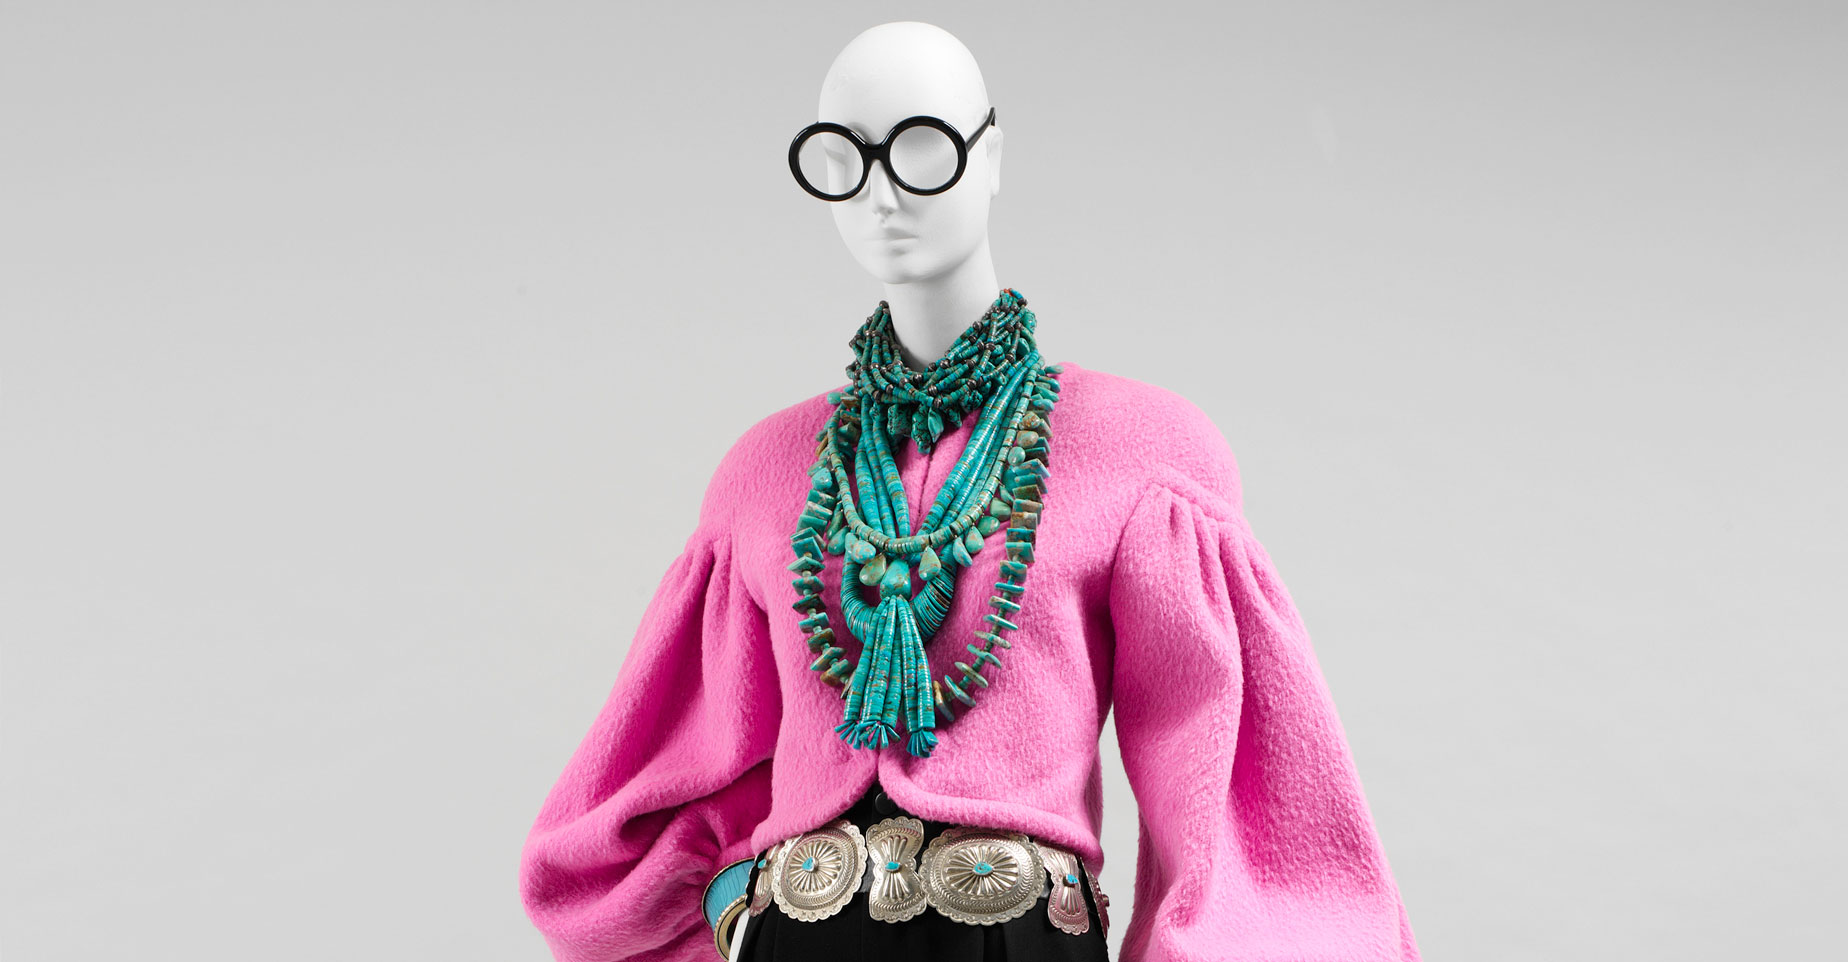 Rara Avis, the Costume Institute at the Metropolitan Museum of Art's 2005 exhibition, featured clothing and objects from Iris Apfel's personal wardrobe spanning the last 40 years. Every ensemble was styled by Ms. Apfel herself.